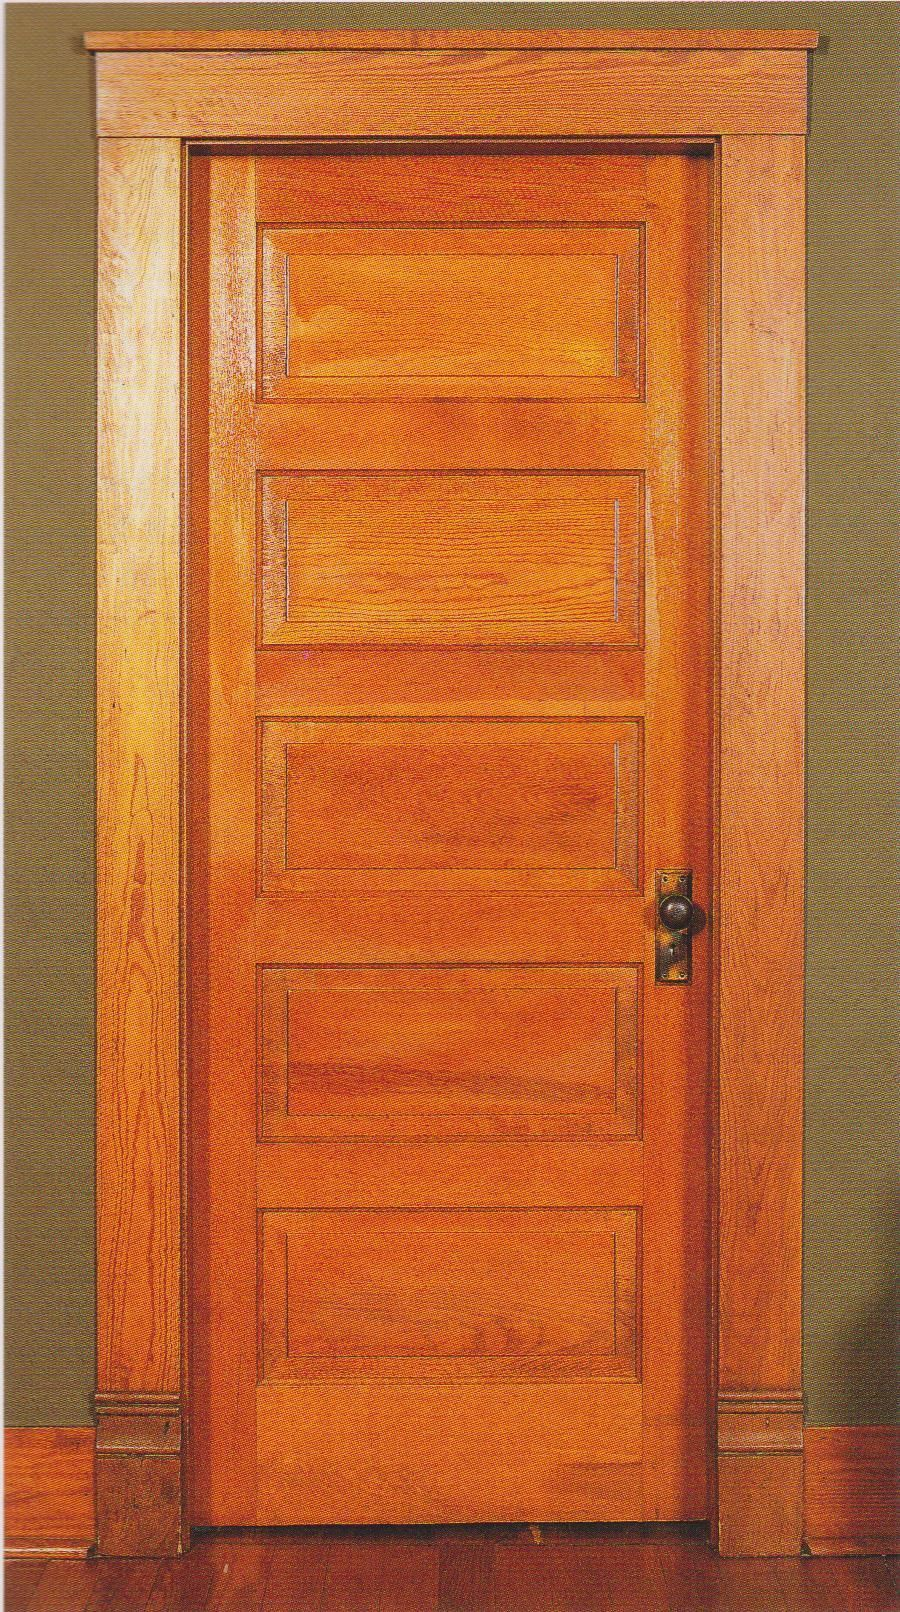 A typical 5 light Shaker style door used in Craftsman homes. & A typical 5 light Shaker style door used in Craftsman homes ...